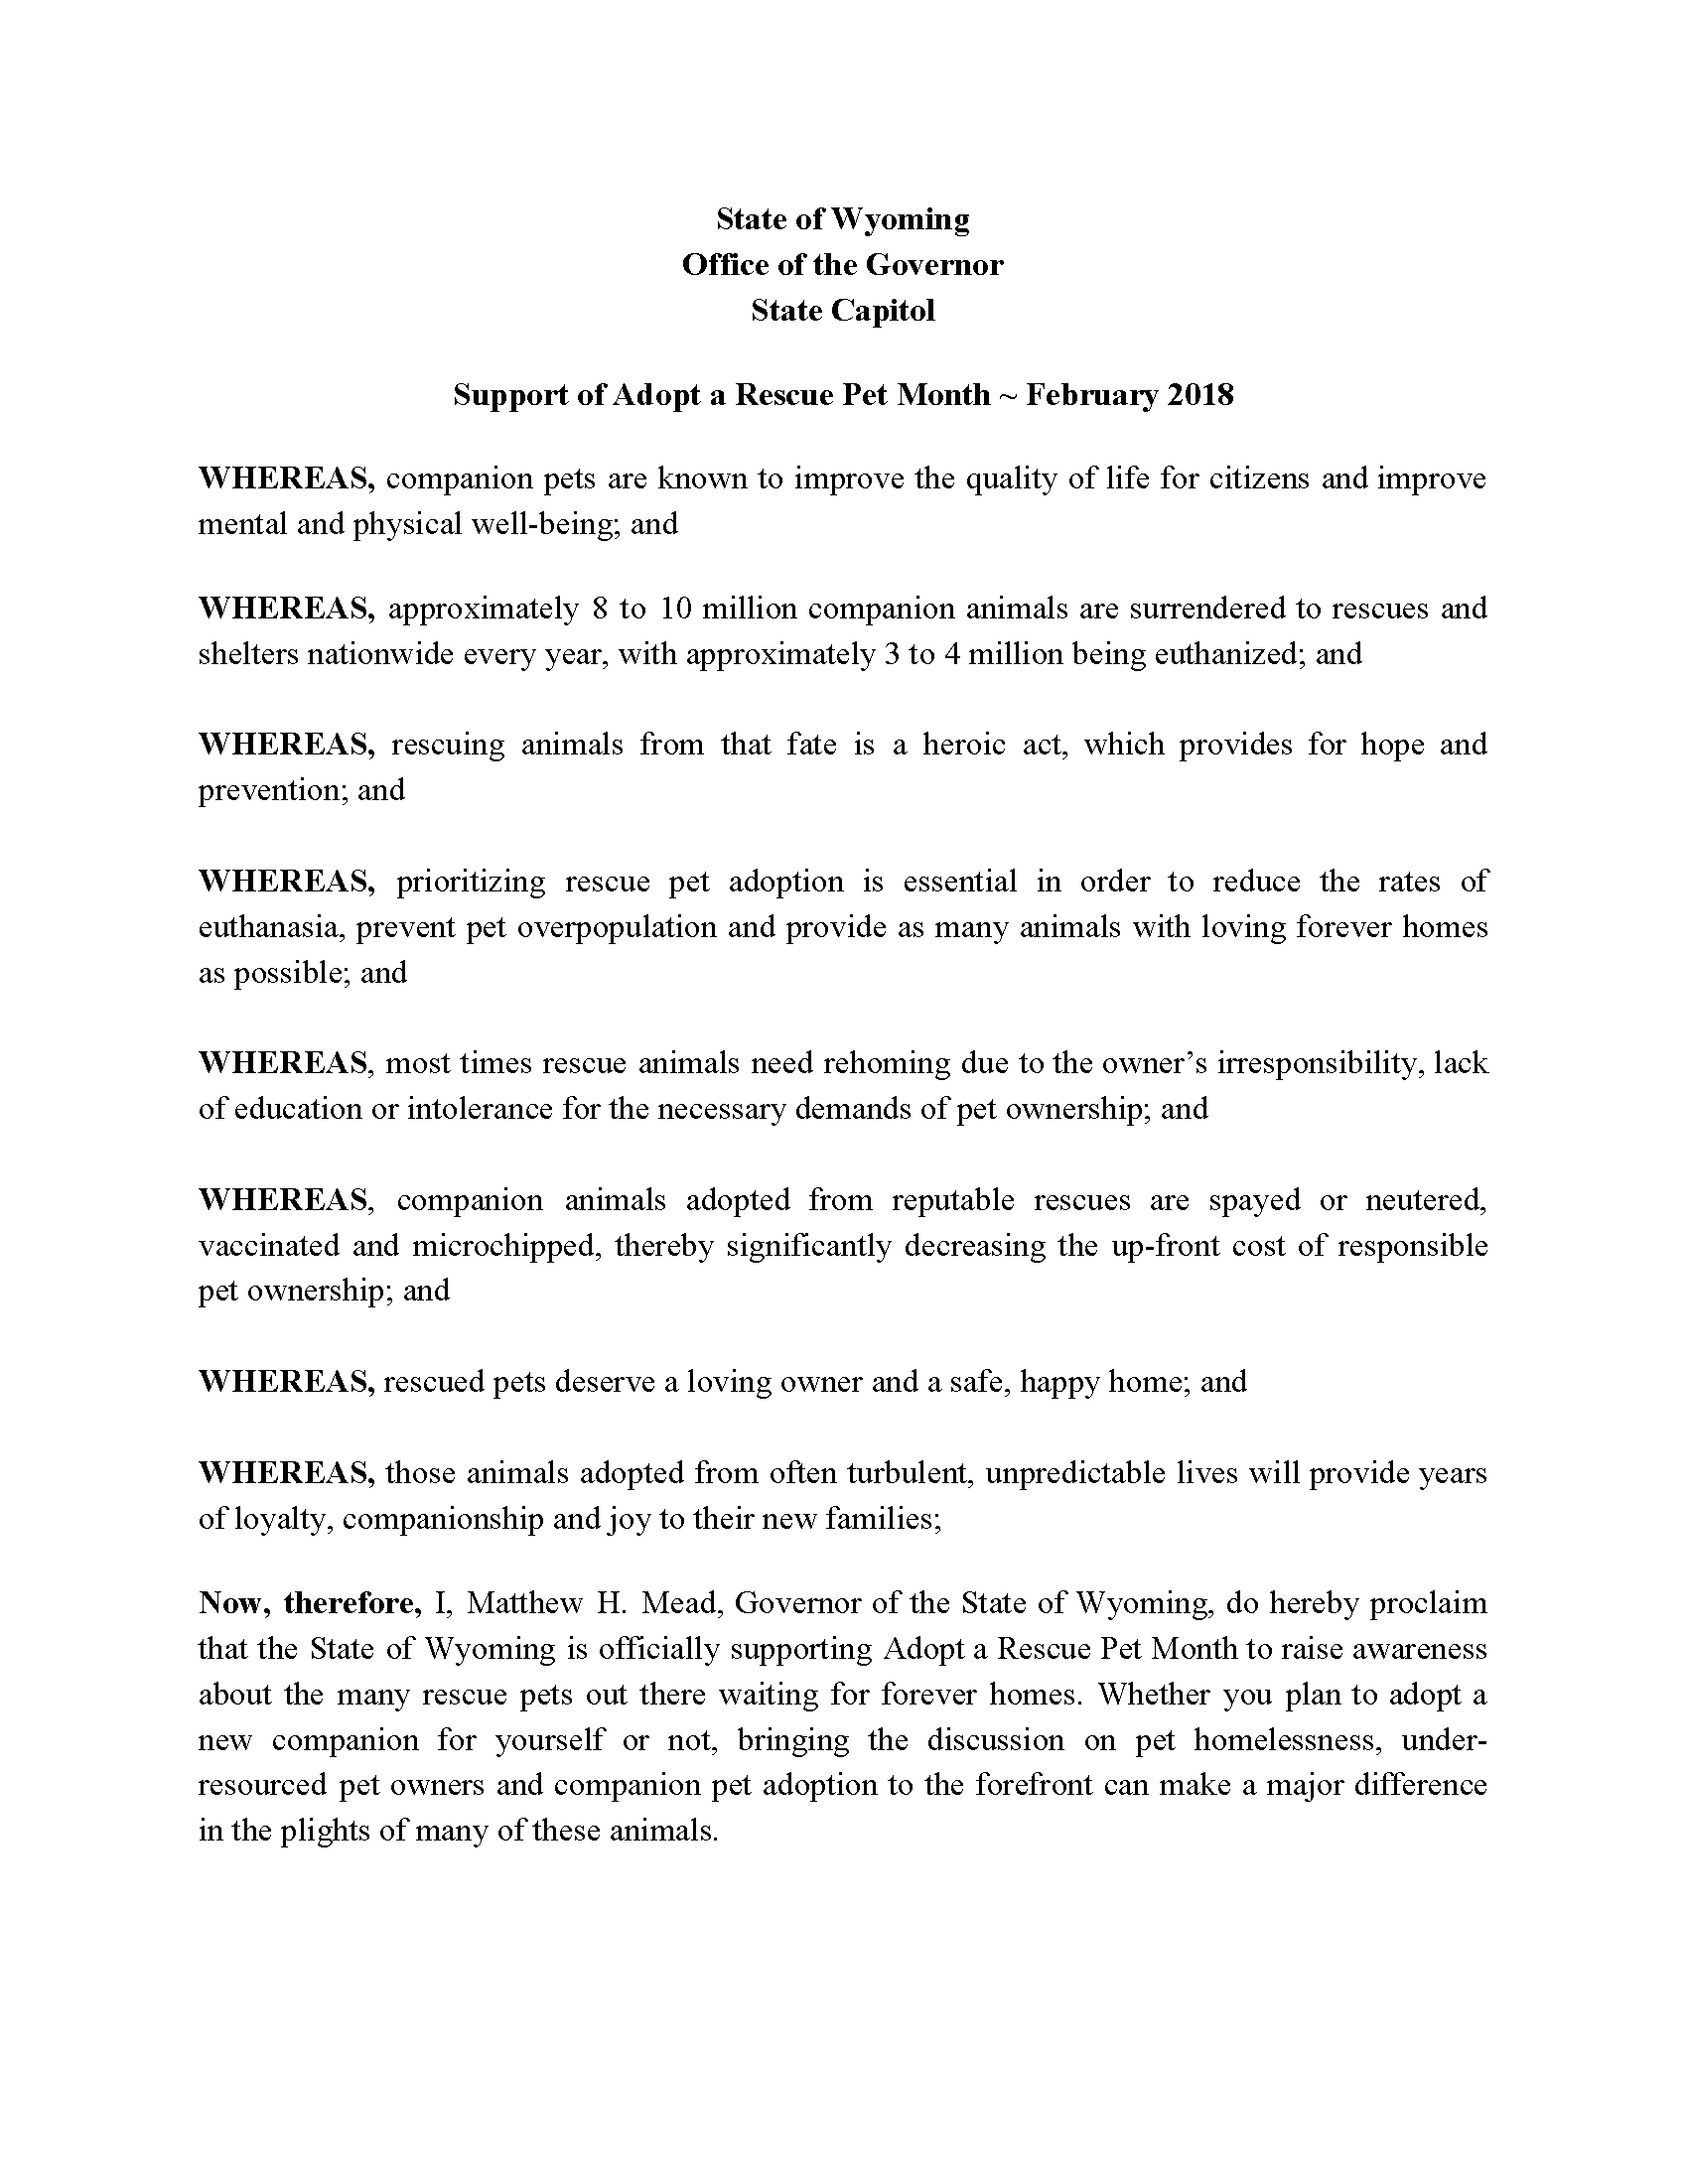 2018-01-18 Proclamation for Adopt a Rescue Pet Month .png